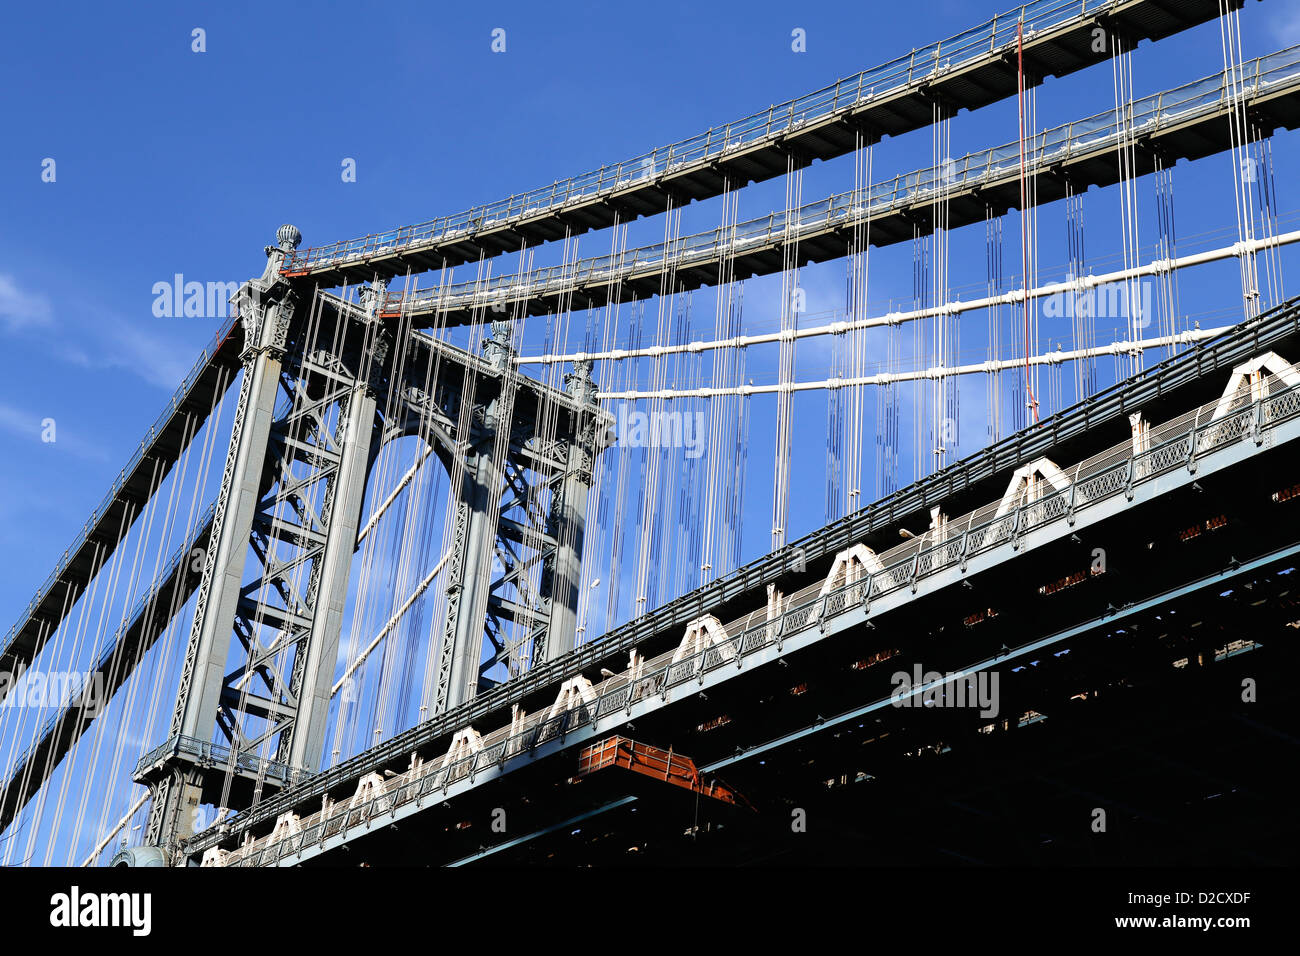 Looking Up at the Manhattan Bridge, Connecting Brooklyn and Manhattan Boroughs in New York City - Stock Image